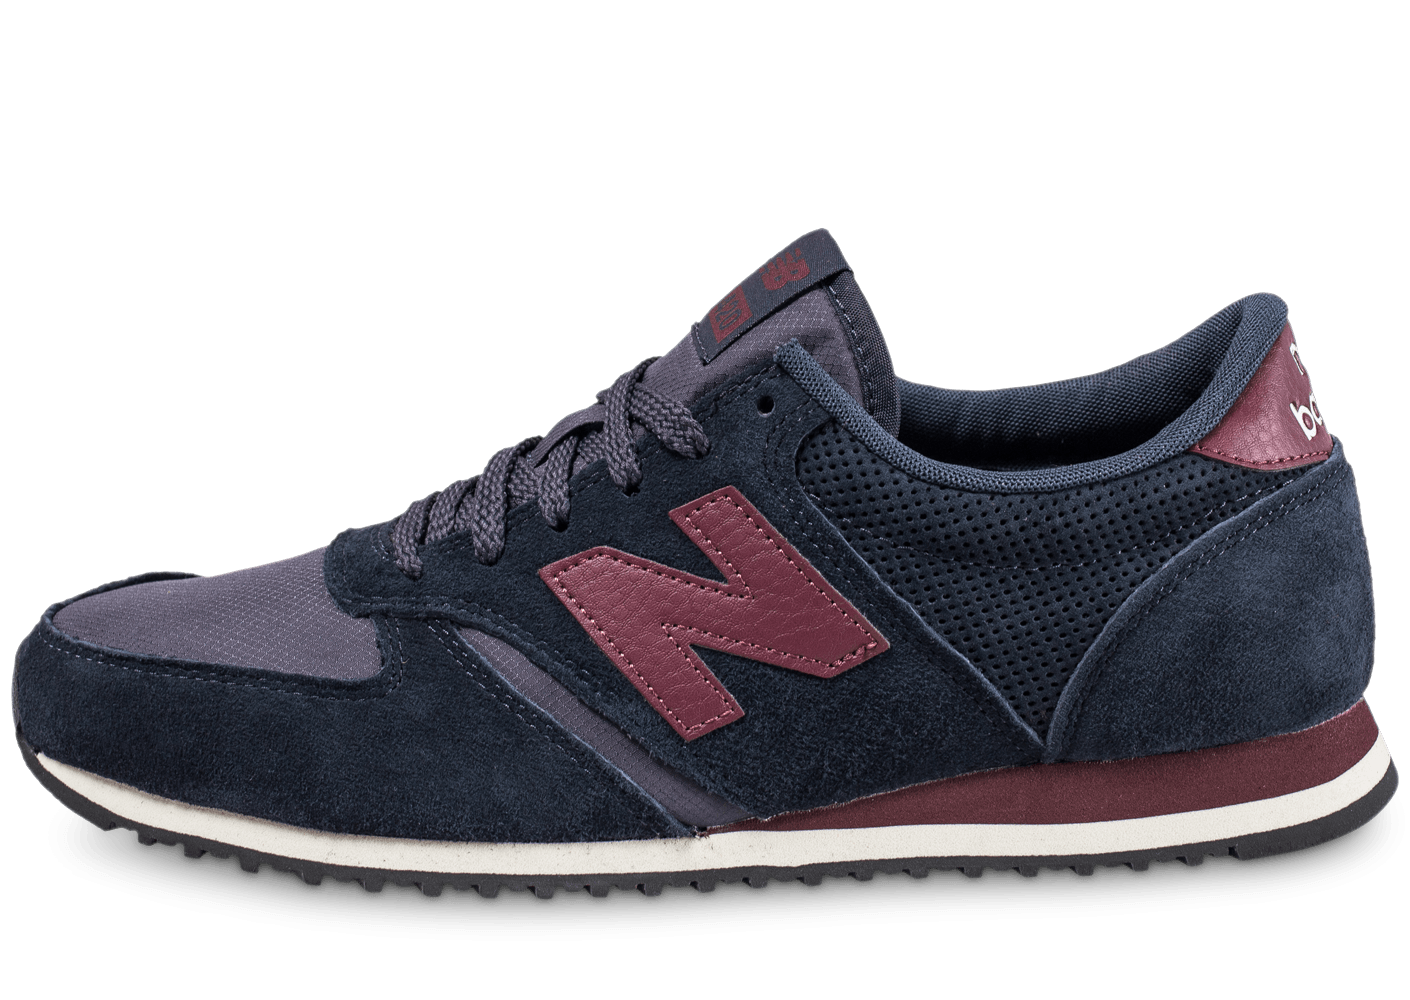 new balance rouge bordeaux u420